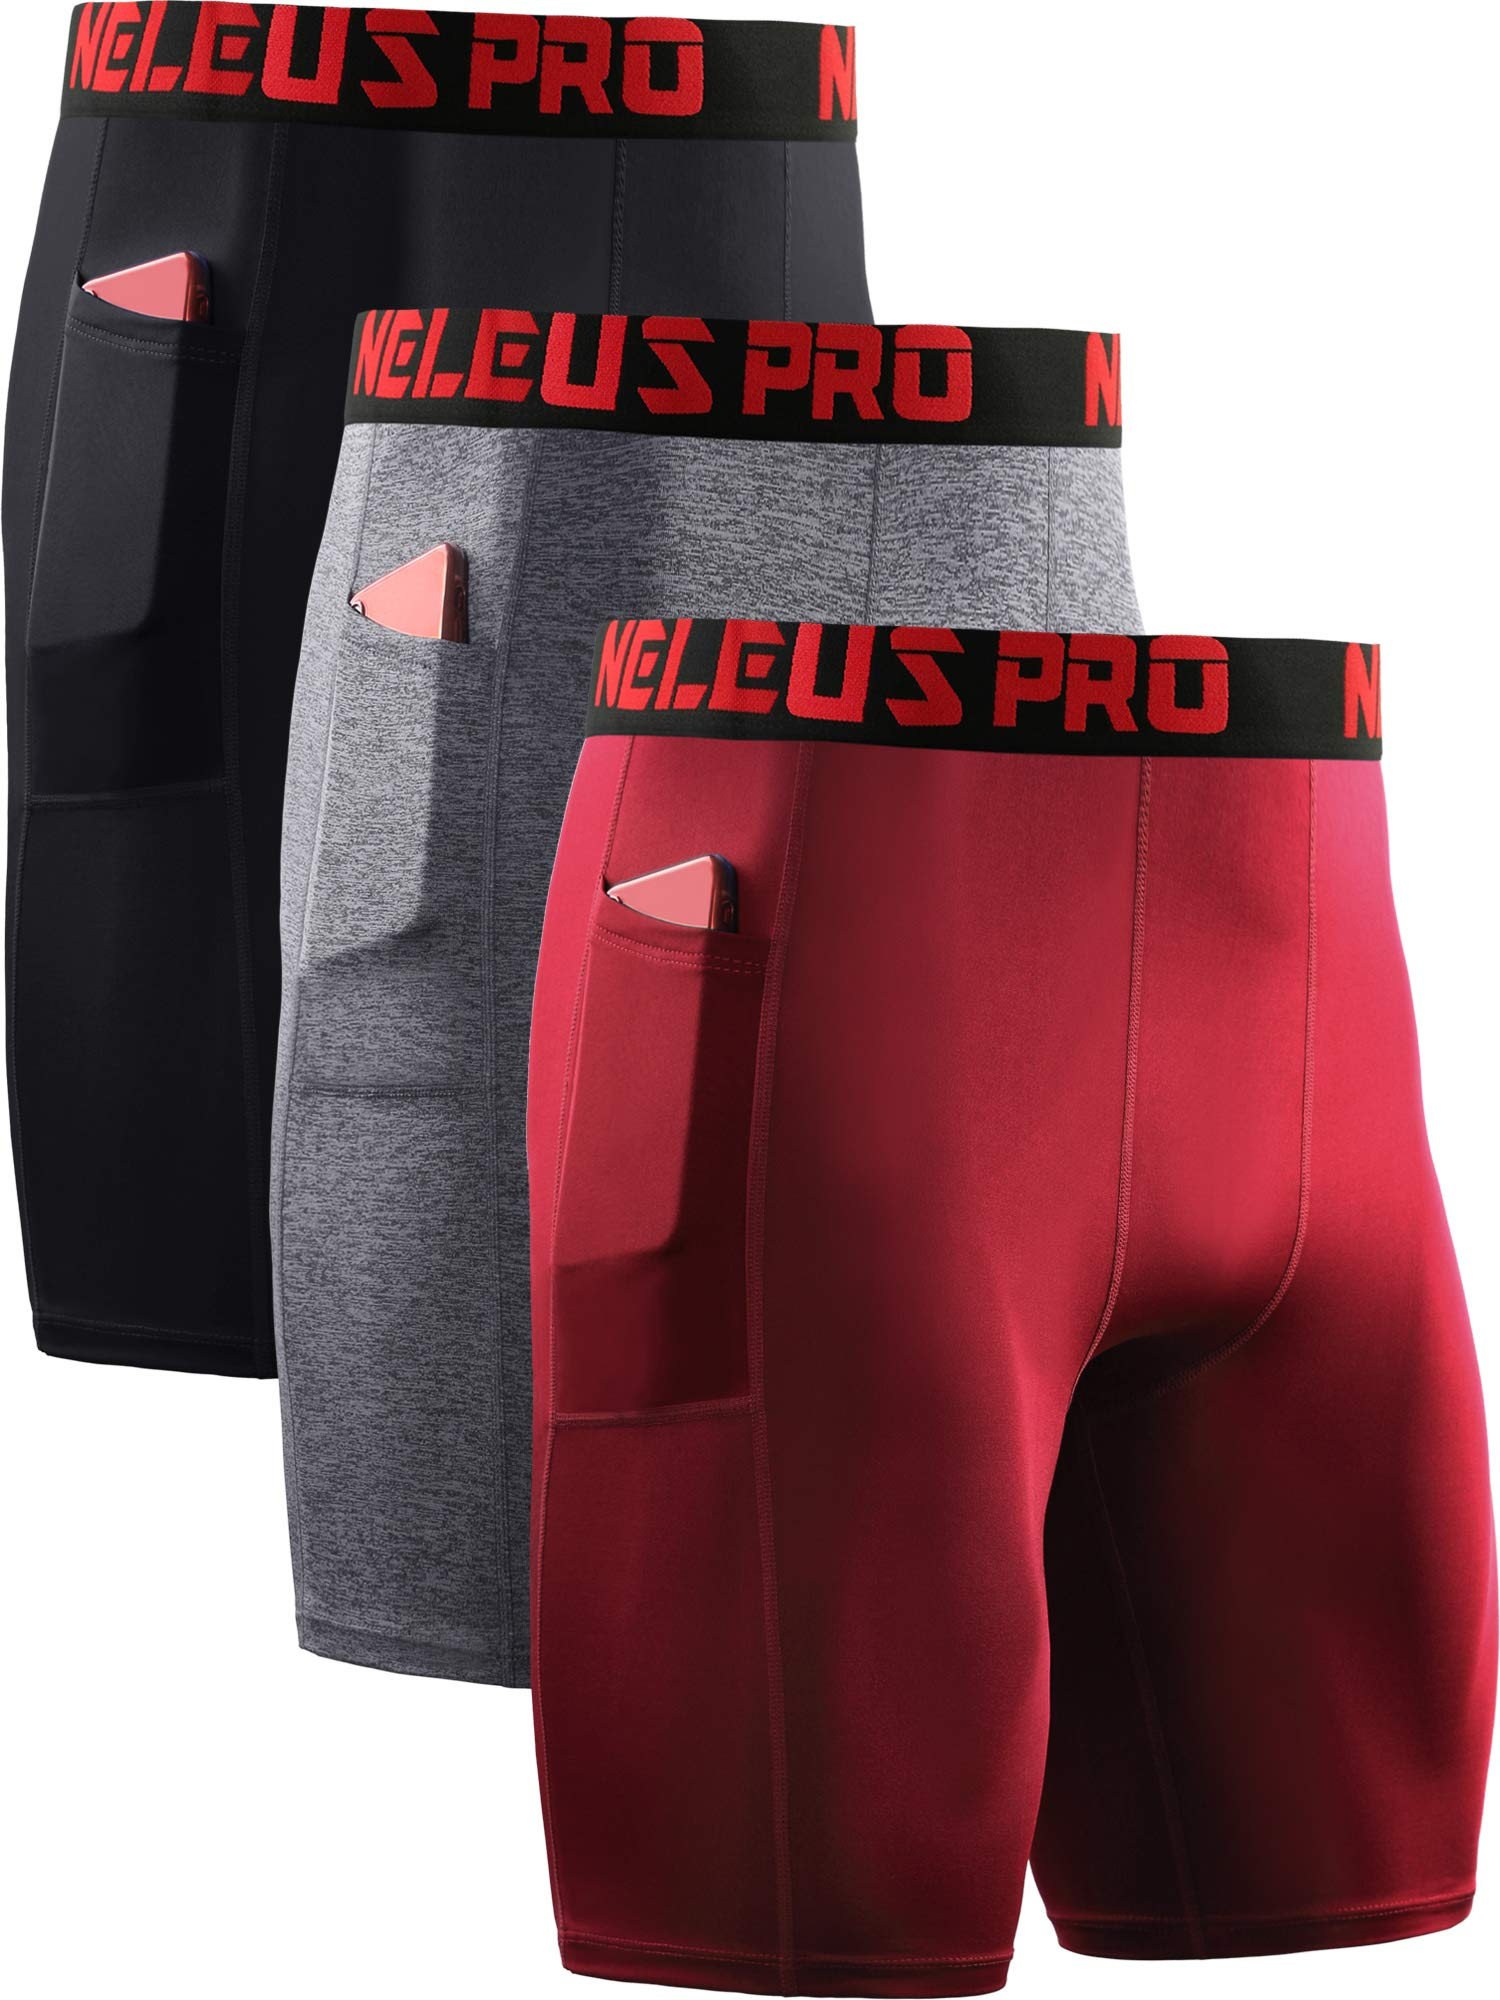 Neleus Men's Compression Shorts with Pockets 3 Pack,6064,Black/Grey/Red,US M,EU L by Neleus